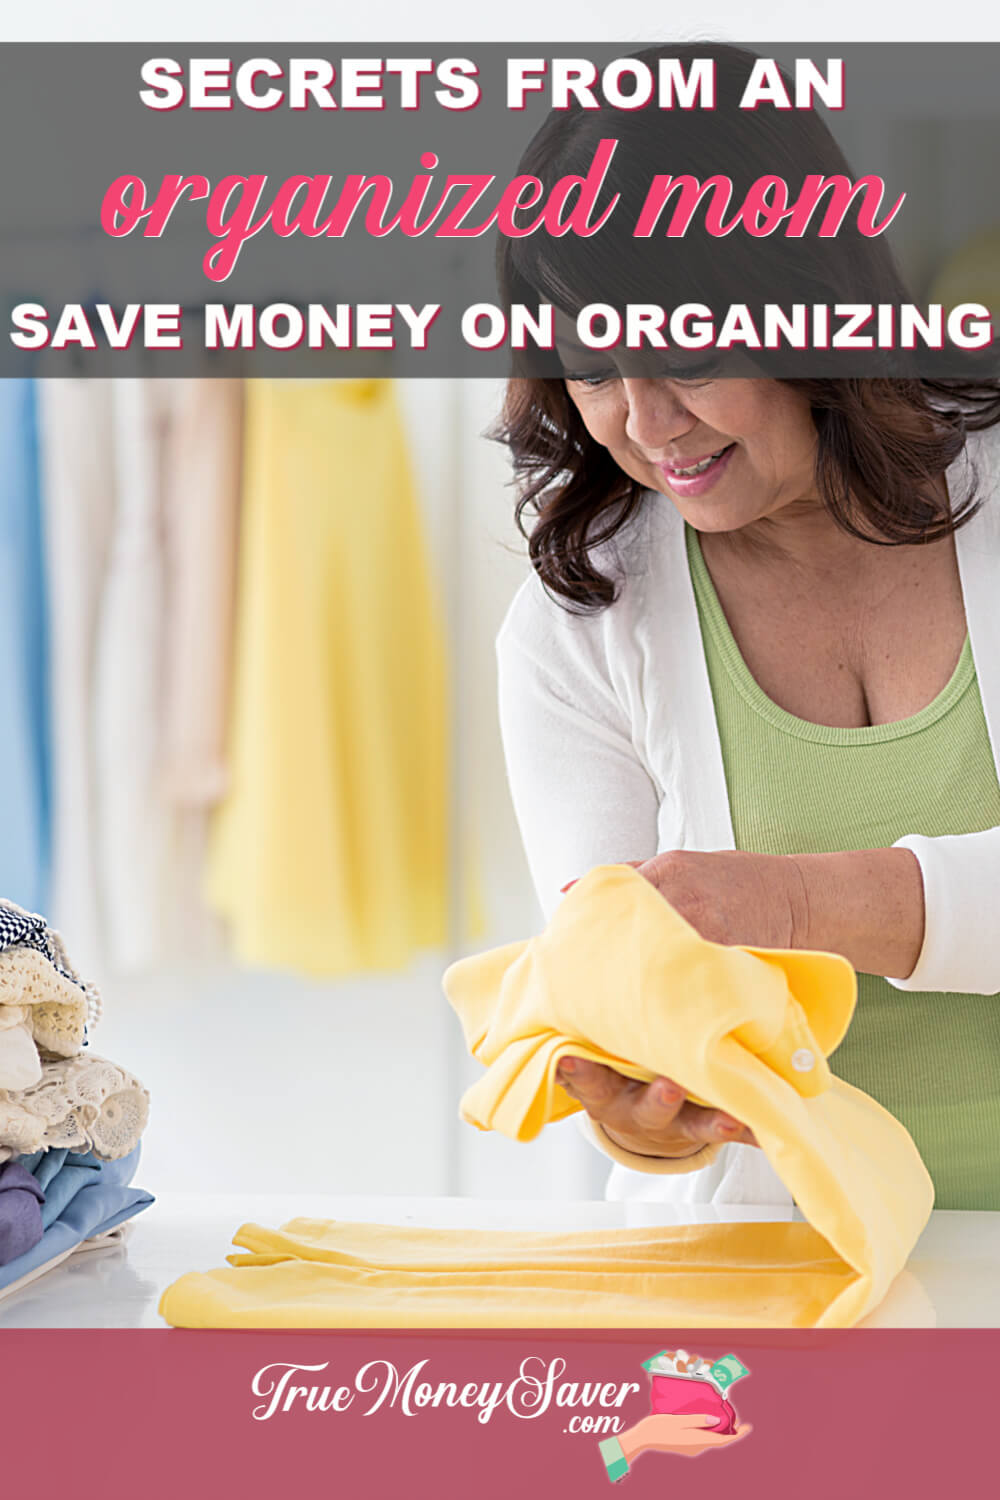 Secrets From An Organized Mom - How To Save Money On Organizing